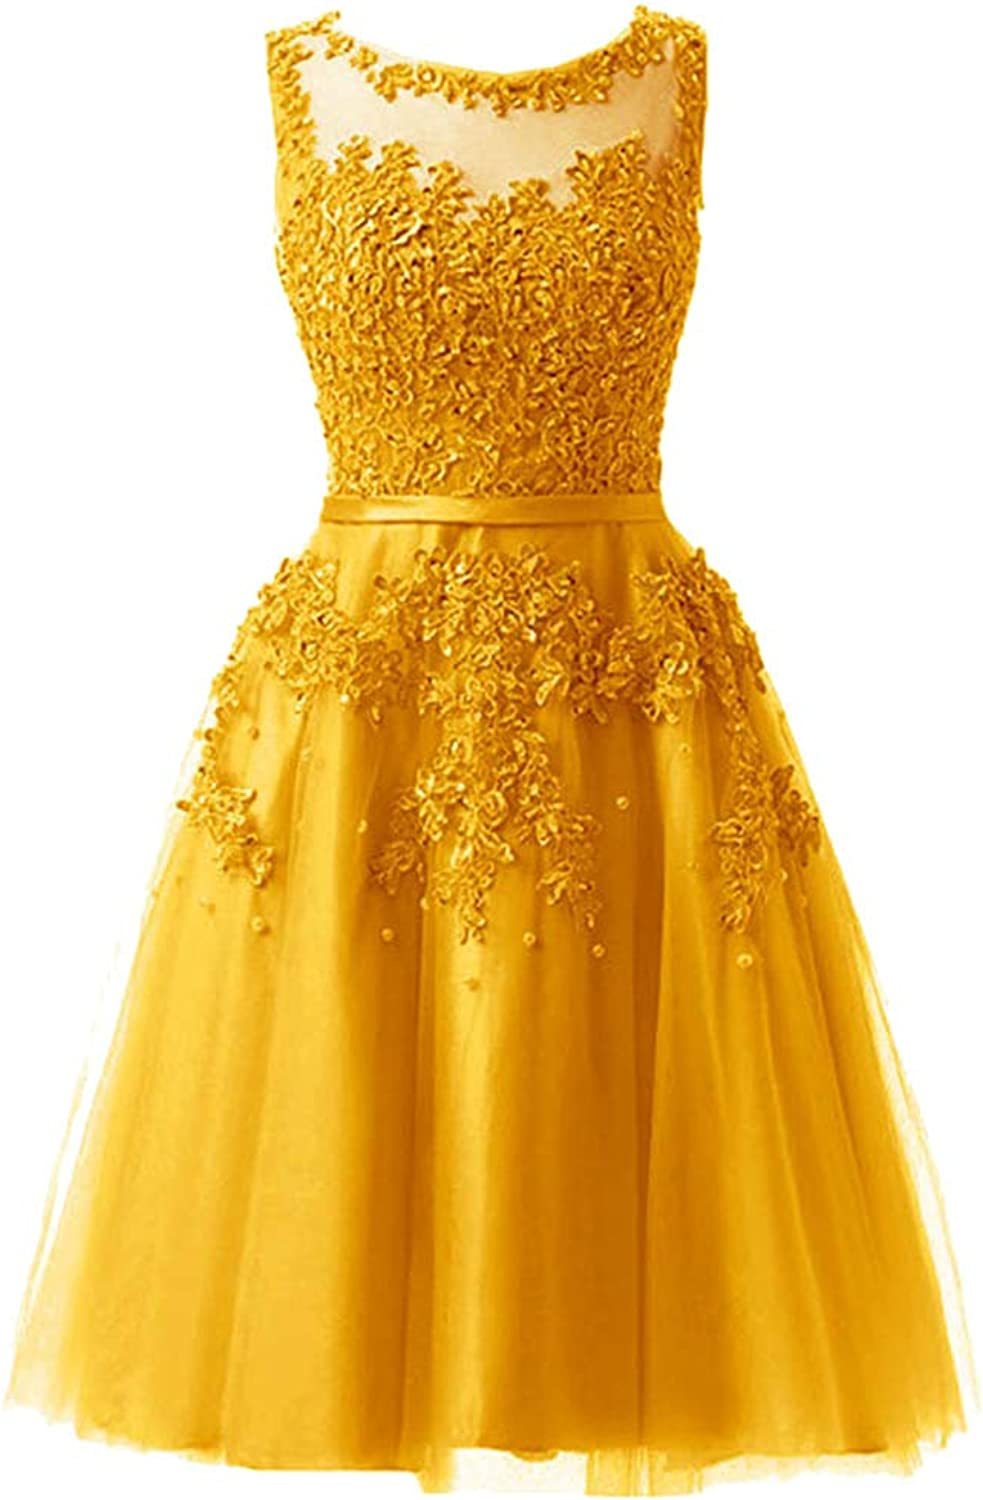 CAFSKYE Lace Illusion Flowers Beading ALine Knee Length Dinner Bridesmaids Dresses Party Short Formal Dress,gold,12